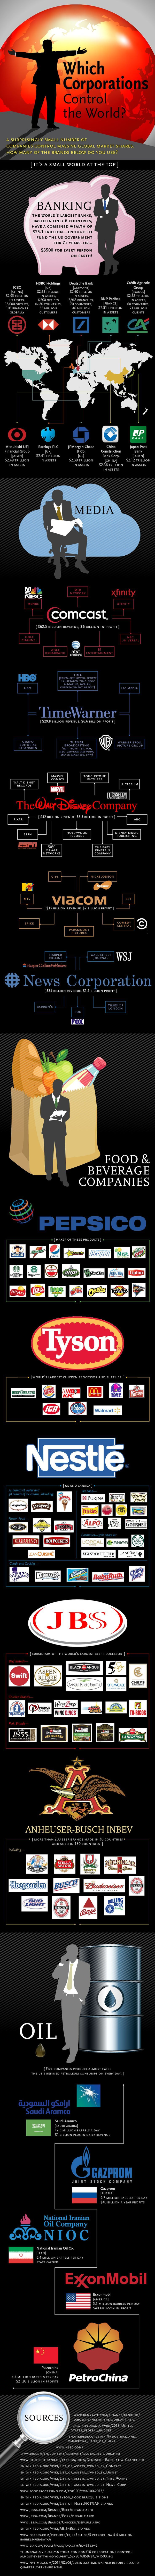 Food infographic Visualistan: Which Corporations Control the World? [Infographic]